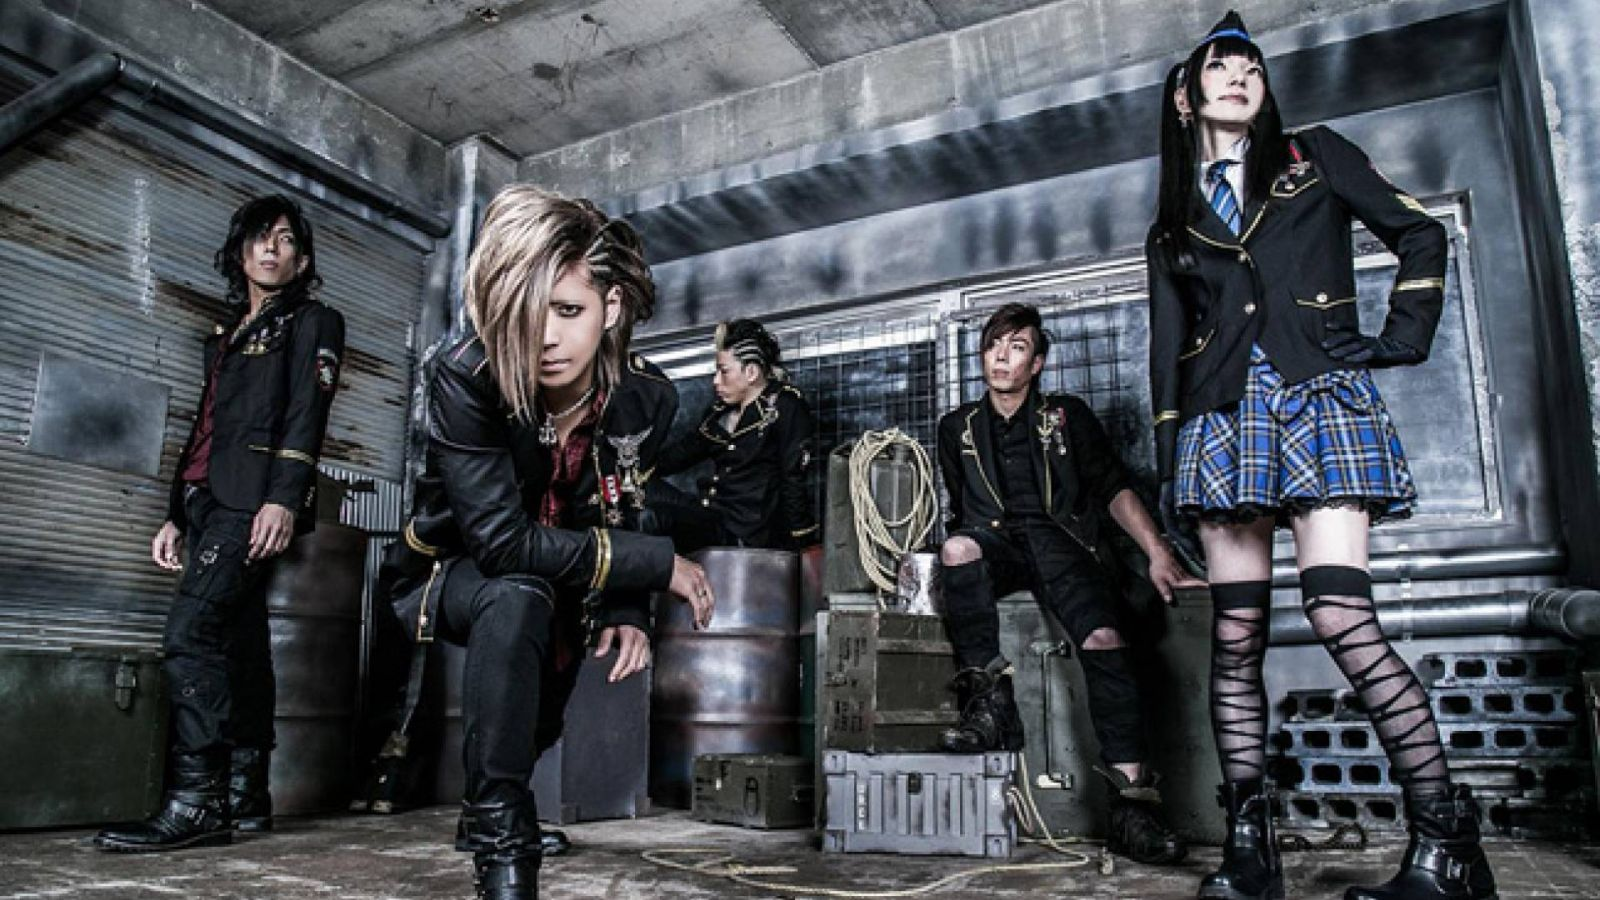 Новости от BLOOD STAIN CHILD © BLOOD STAIN CHILD. All rights reserved.